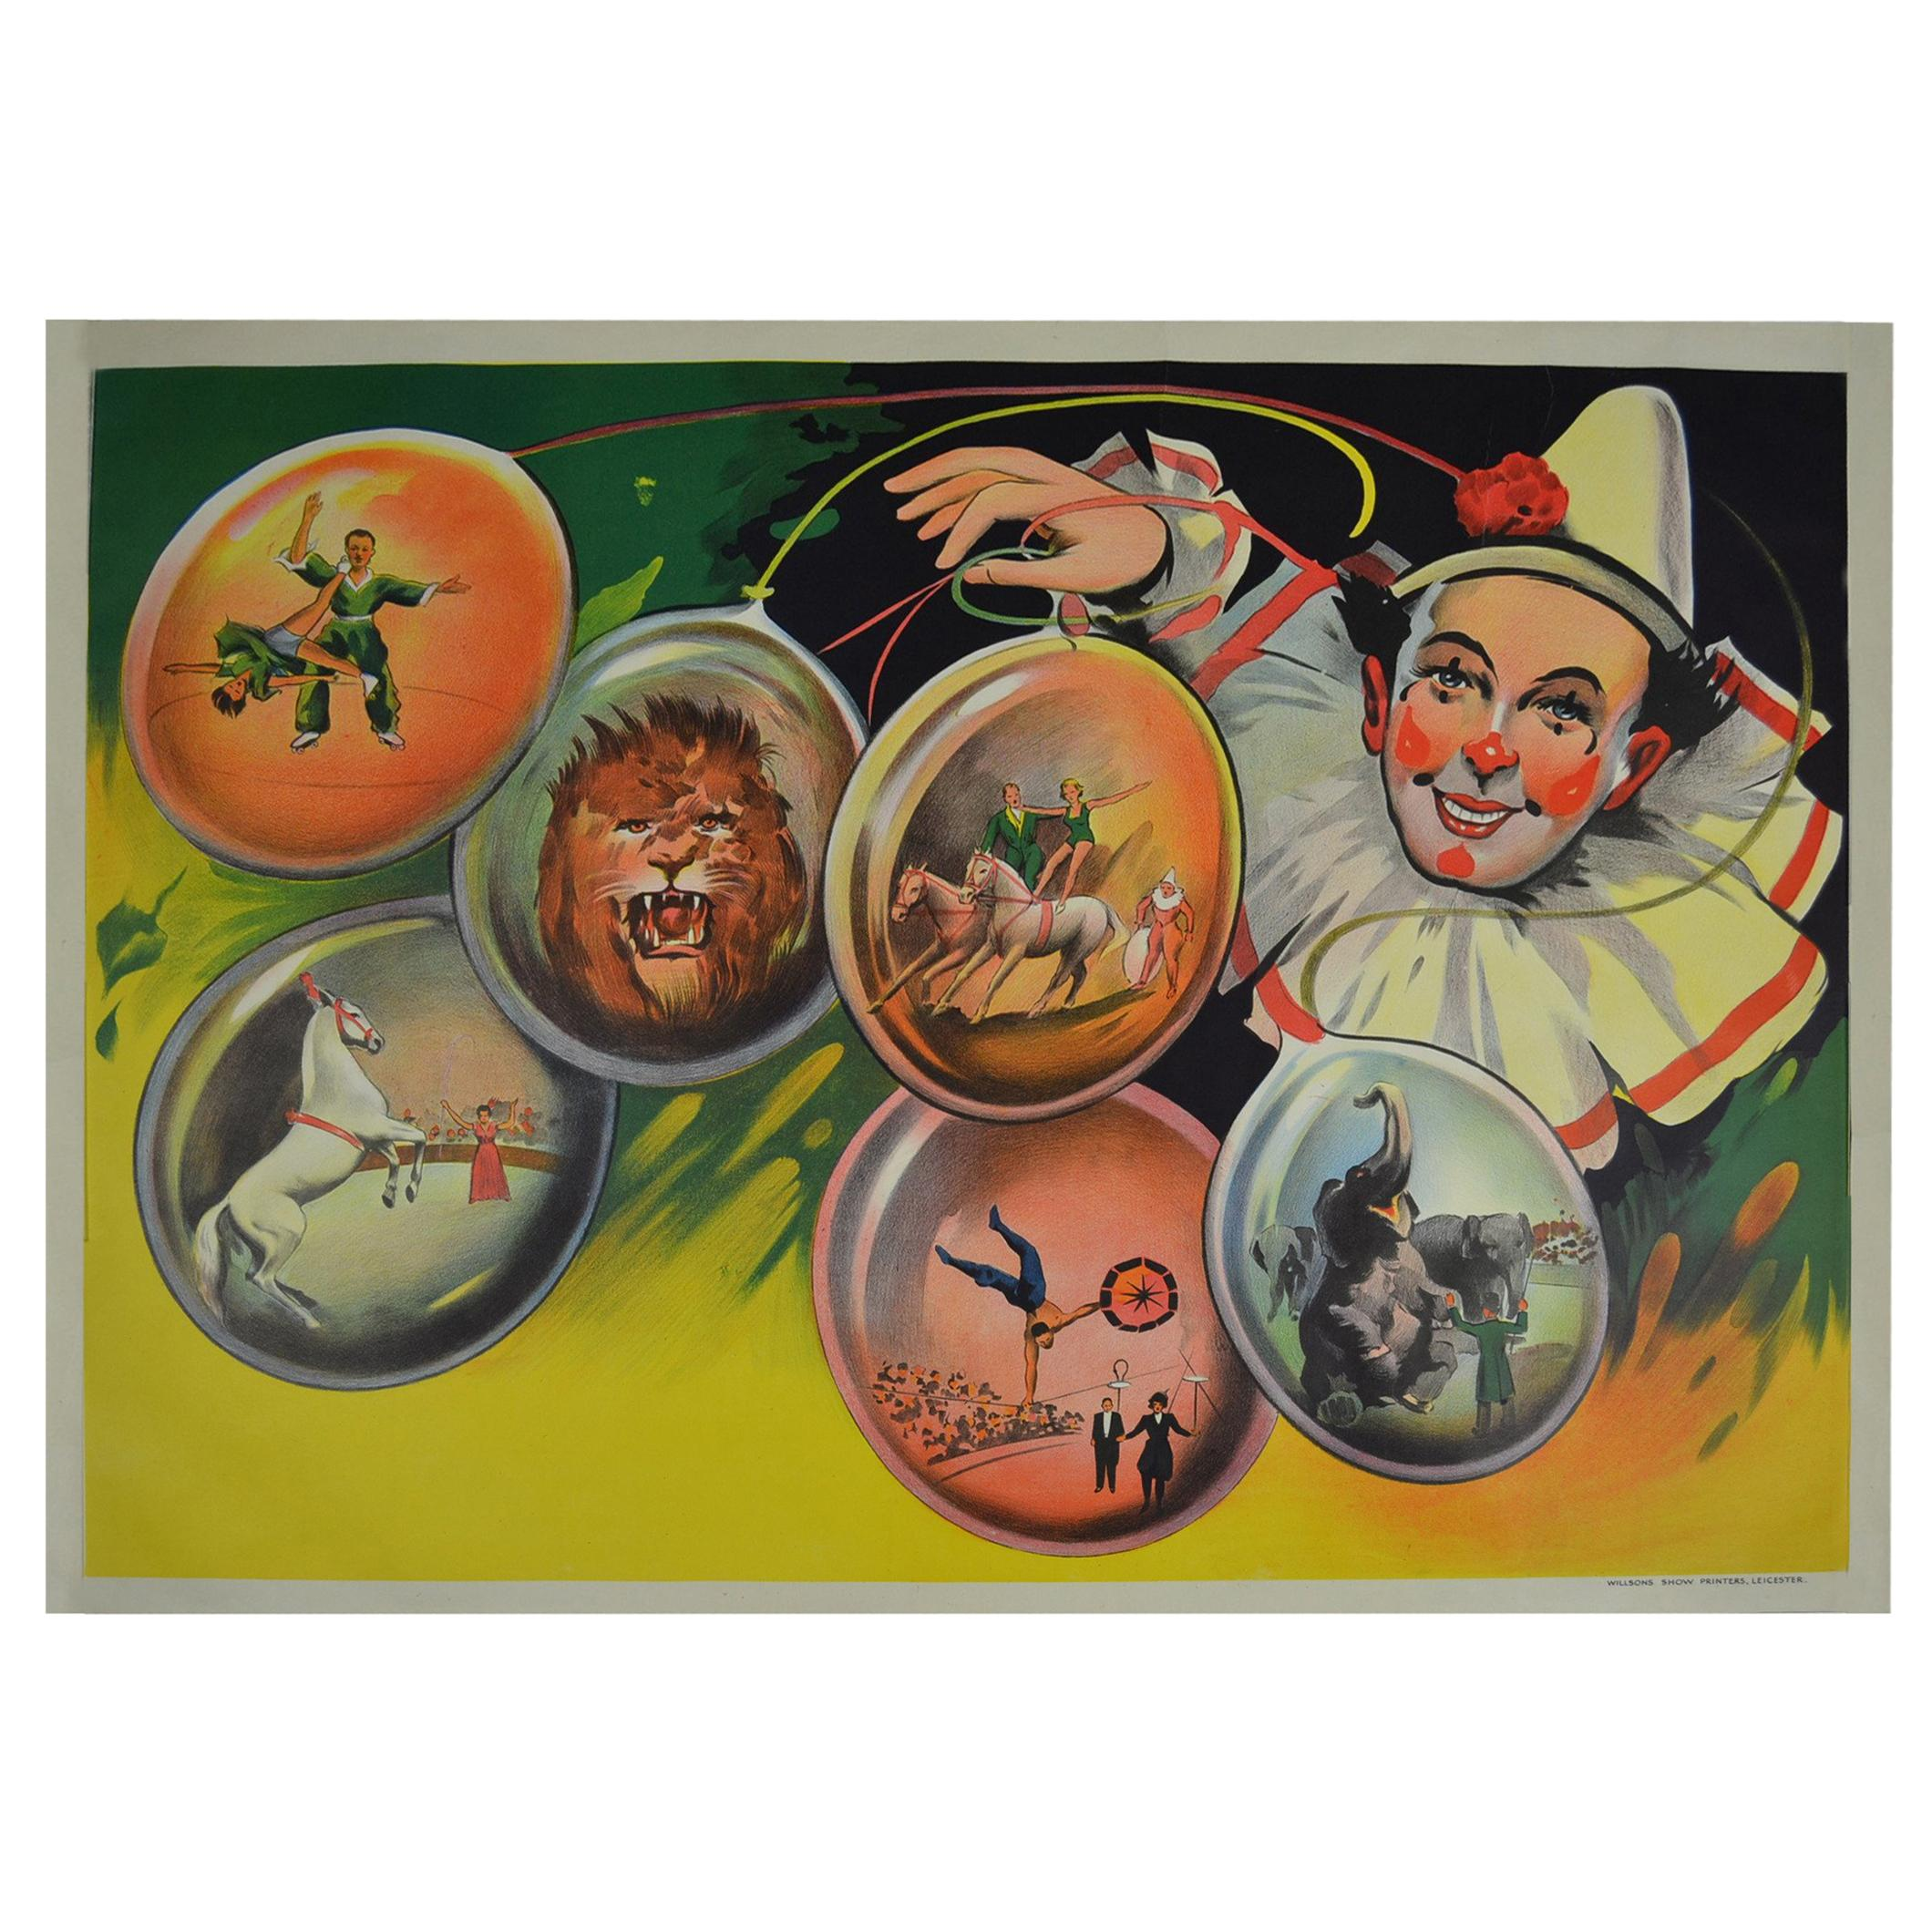 Litho Circus Poster with Clown and Circus Scenes Printed by Willsons Leicester